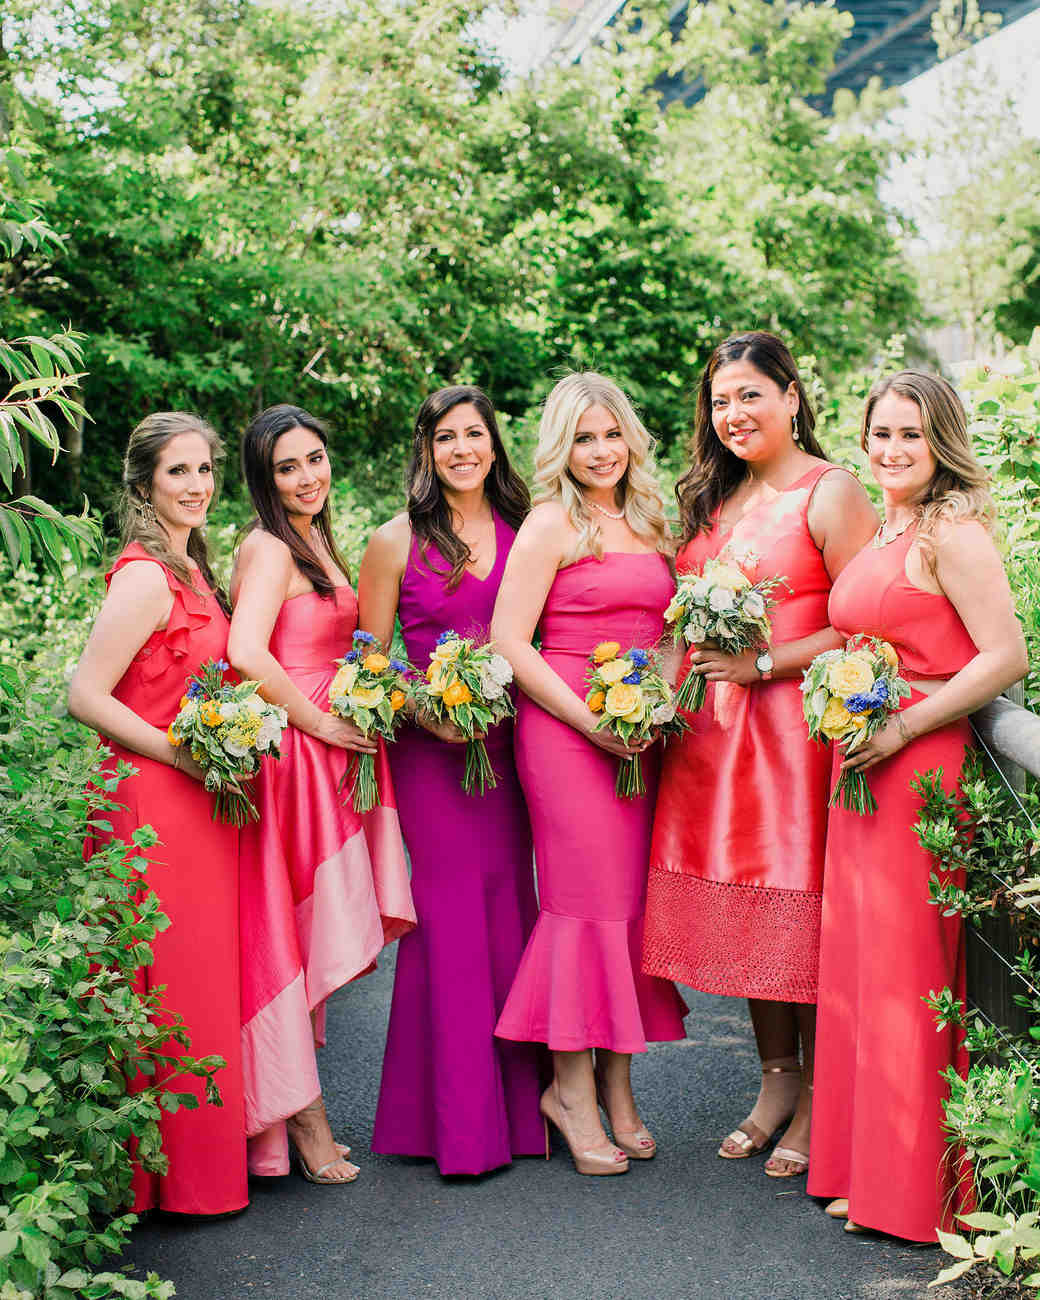 c3d754f4fb073a risa ross wedding brooklyn new york bridesmaids